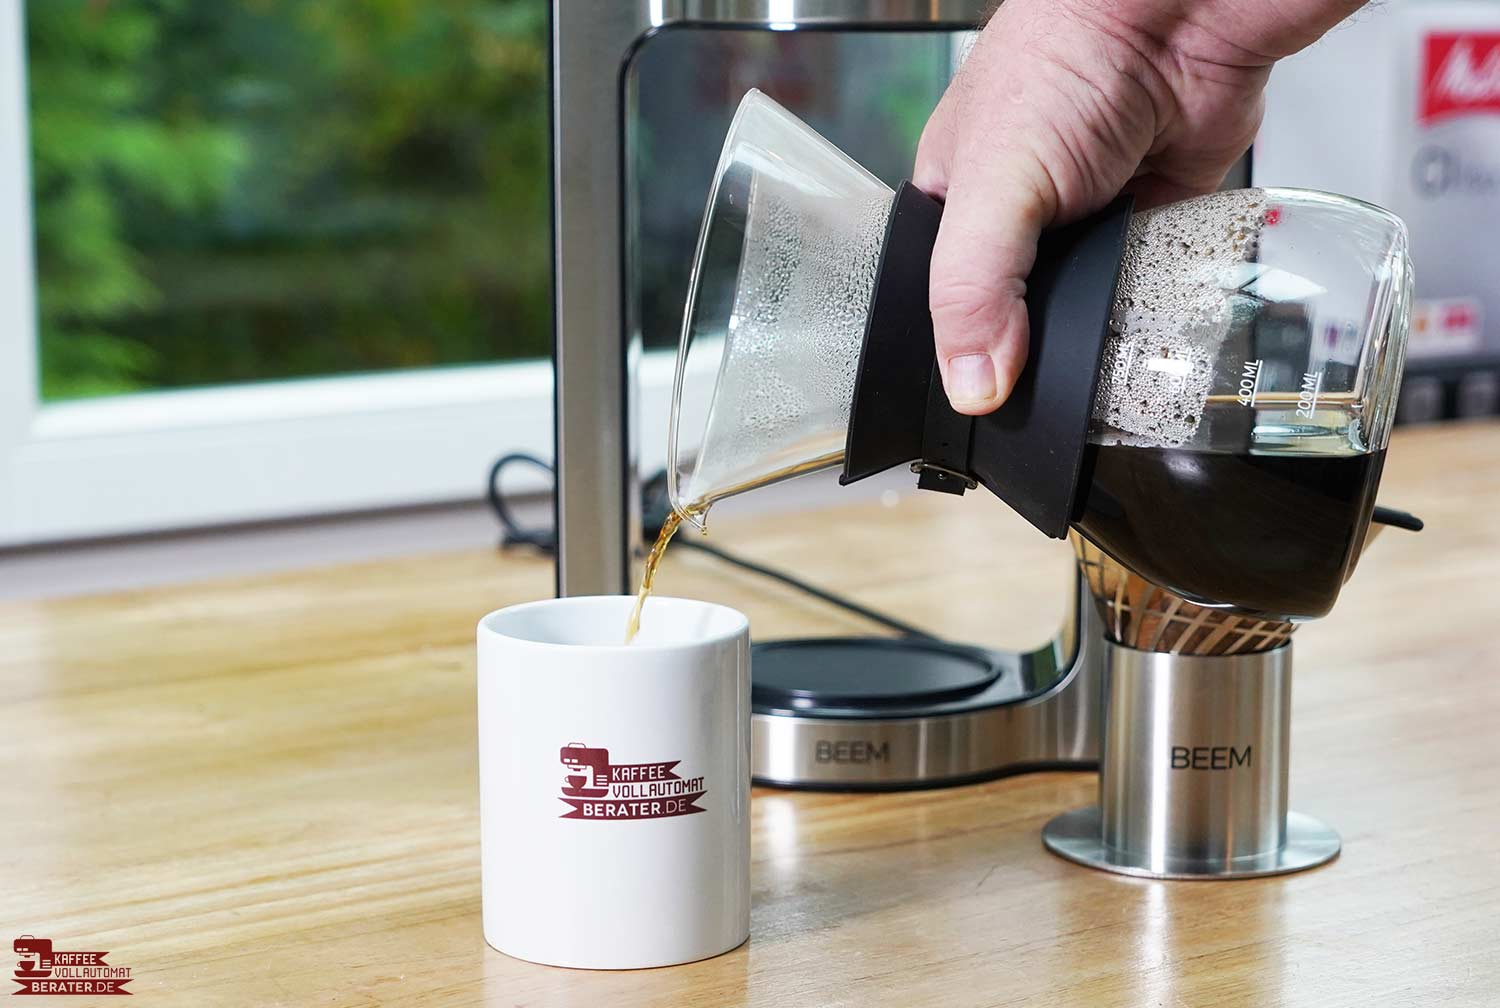 Beem-Pour-Over: Kaffee